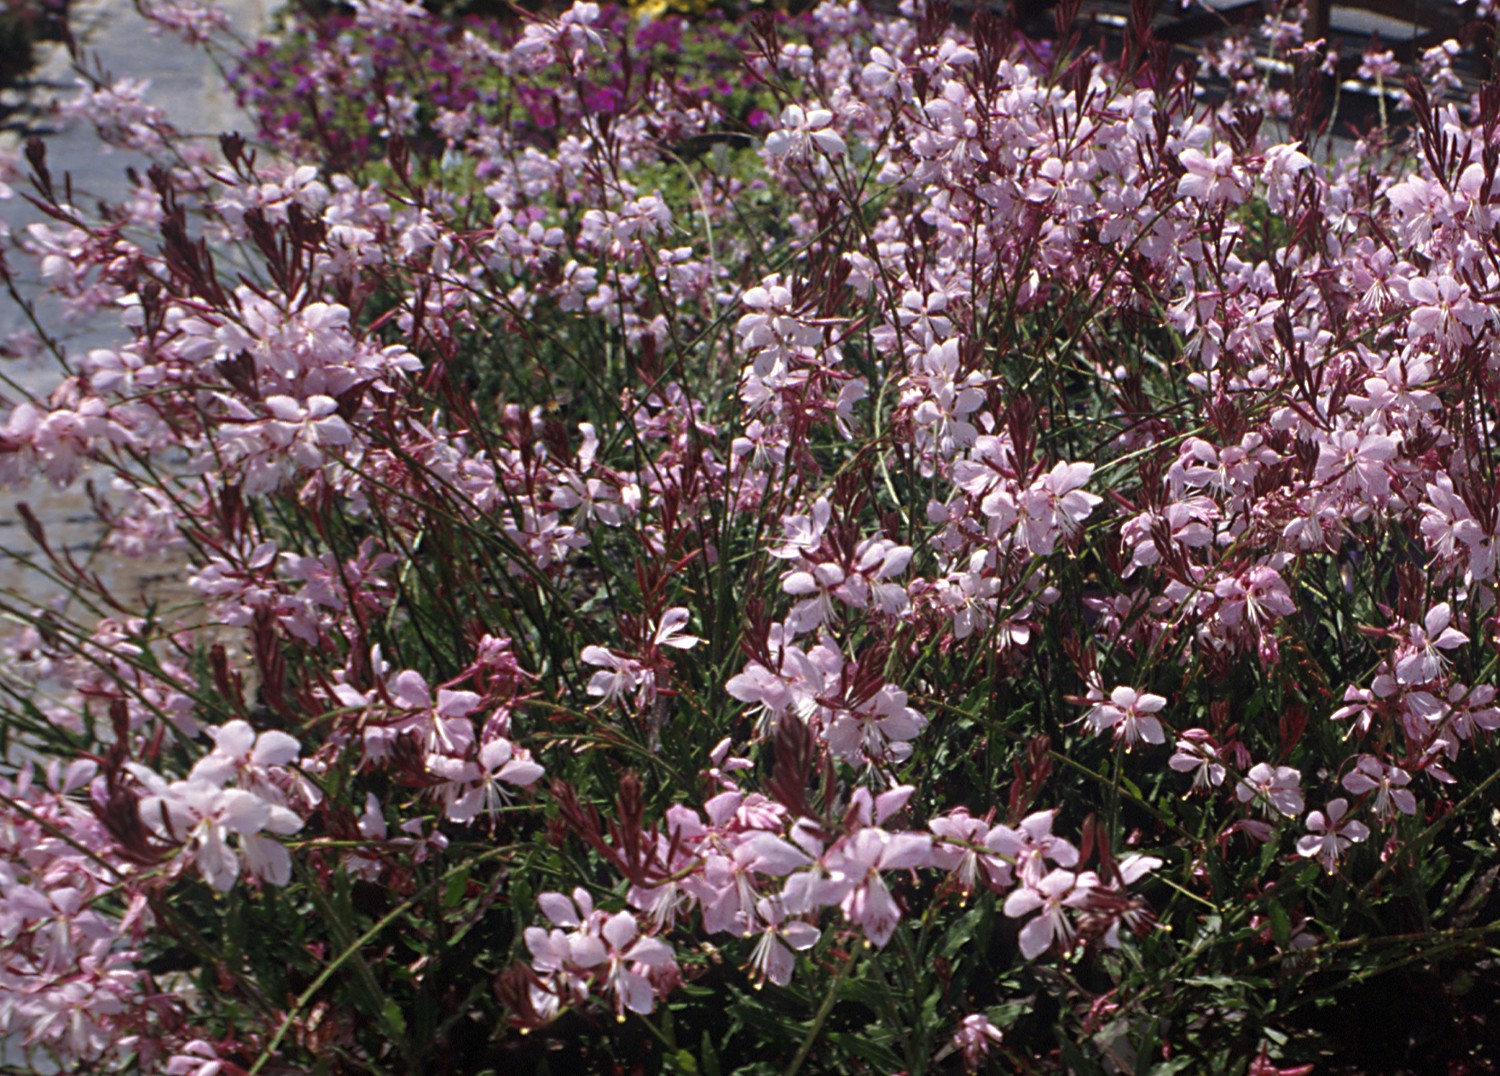 Gaura walbertons pink fountain whirling butterflies photo courtesy of planthaven inc mightylinksfo